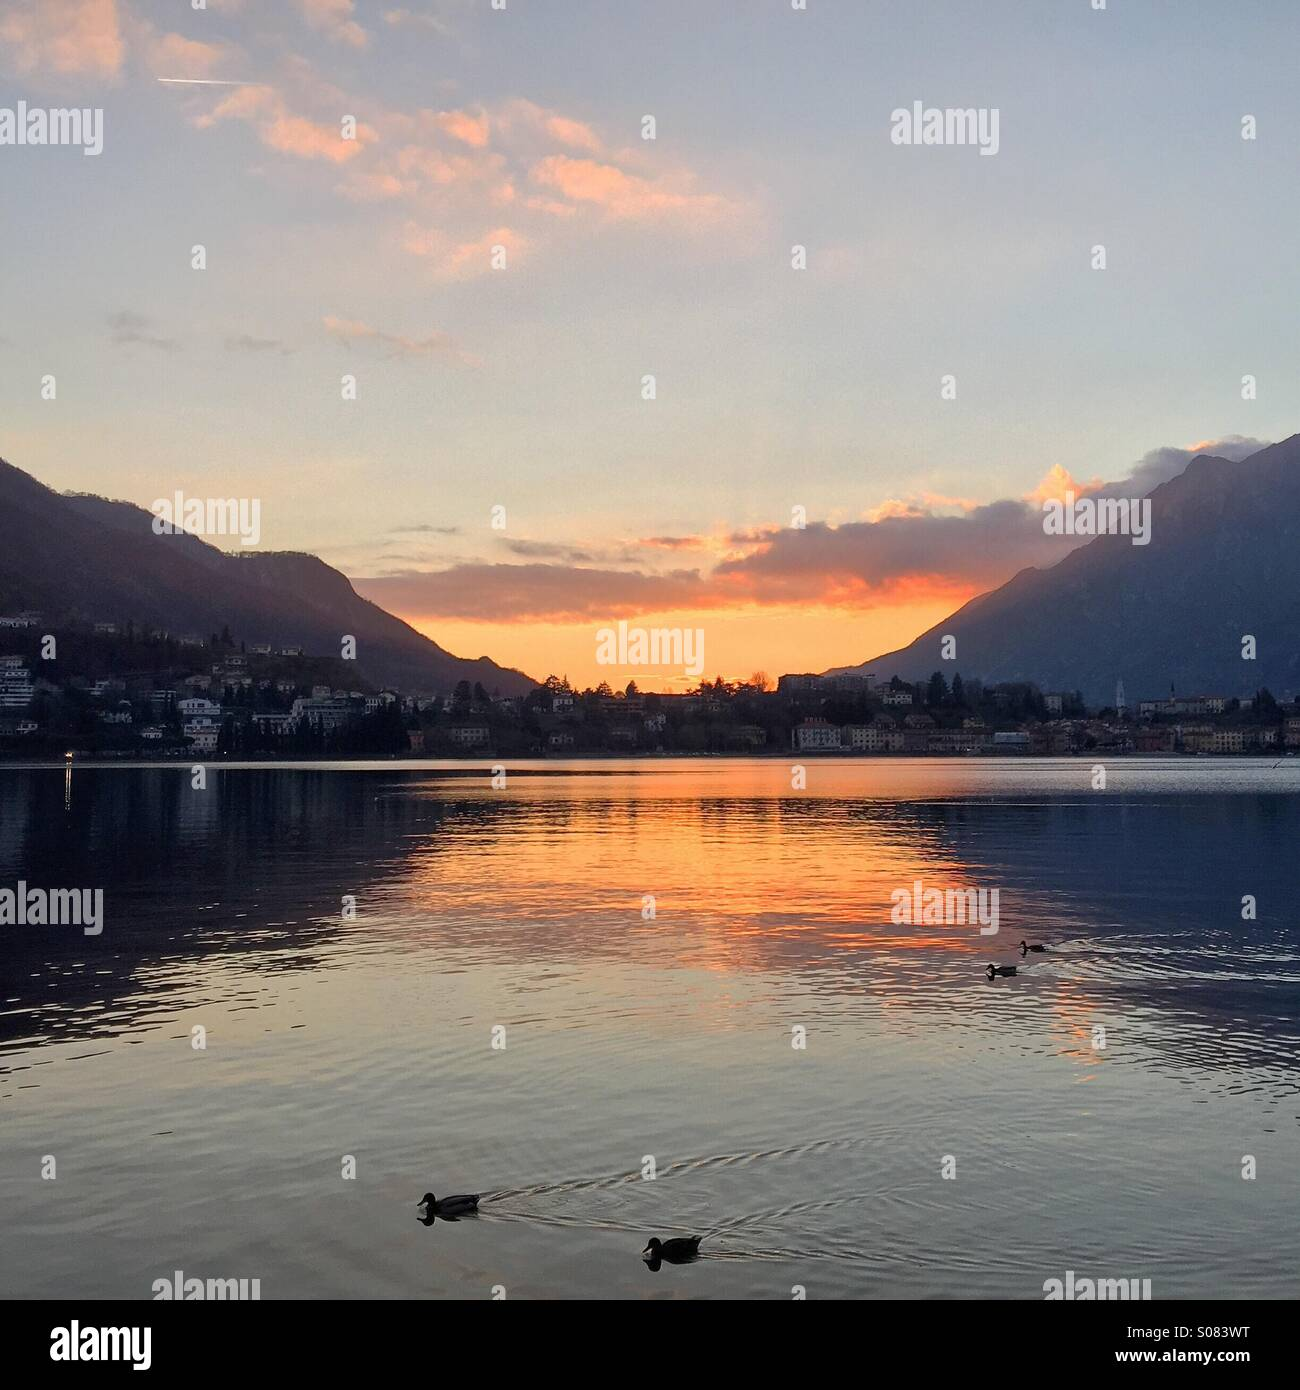 Sunset by the tranquil lake, ducks enjoy a few more moments of sunlight in this gentle winter day - Stock Image